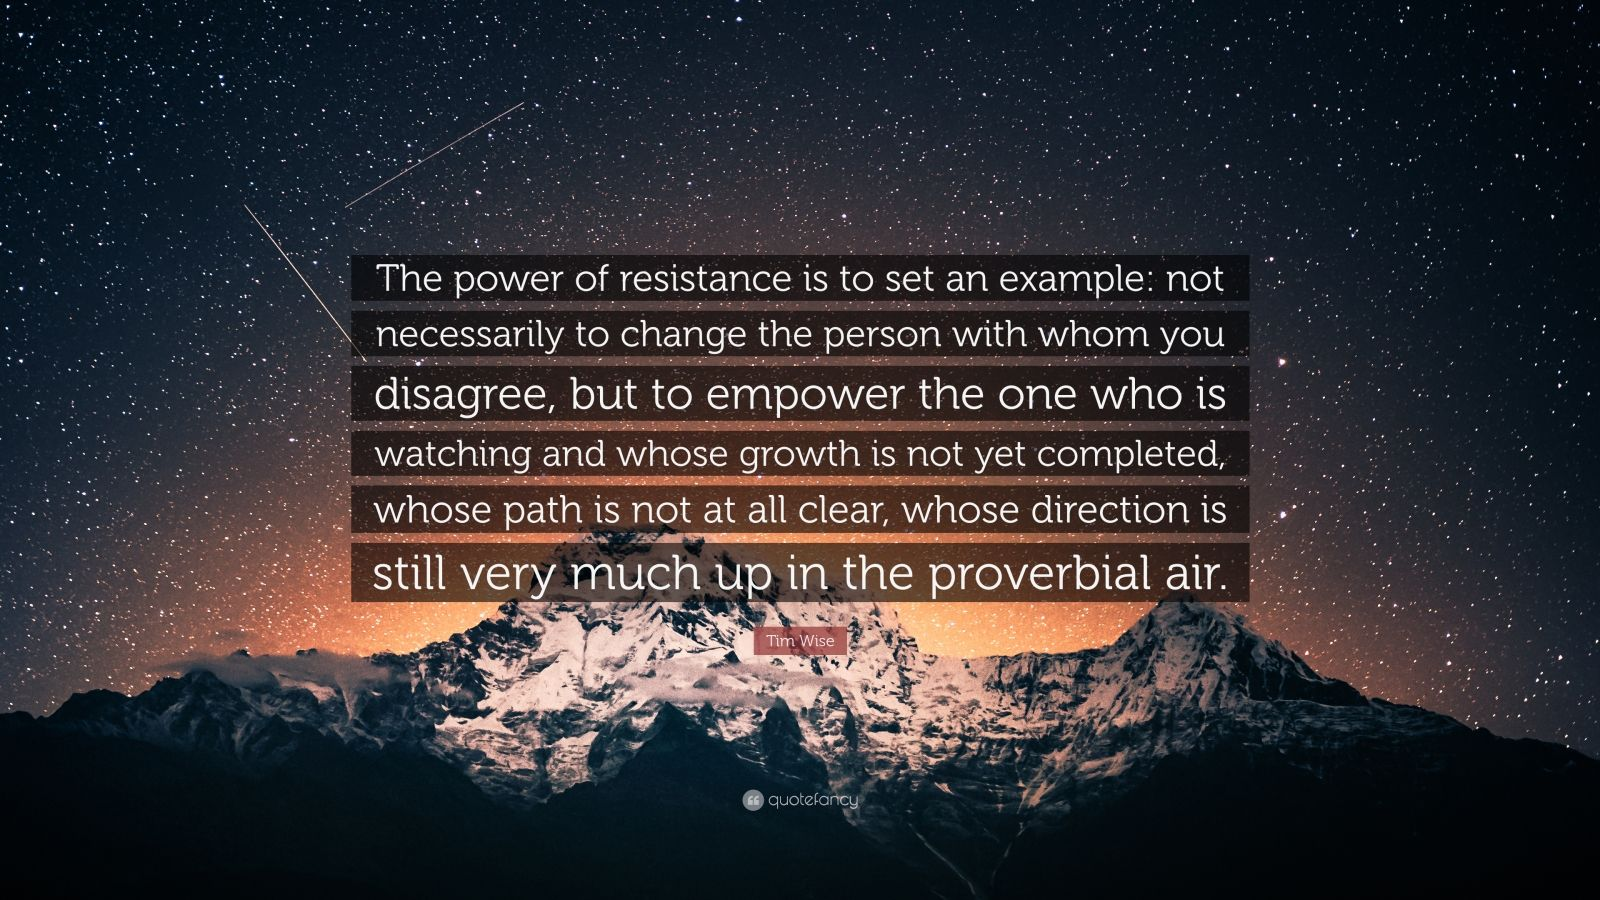 "Tim Wise Quote: ""The power of resistance is to set an example: not necessarily to change the person with whom you disagree, but to empower the one who is watching and whose growth is not yet completed, whose path is not at all clear, whose direction is still very much up in the proverbial air."""